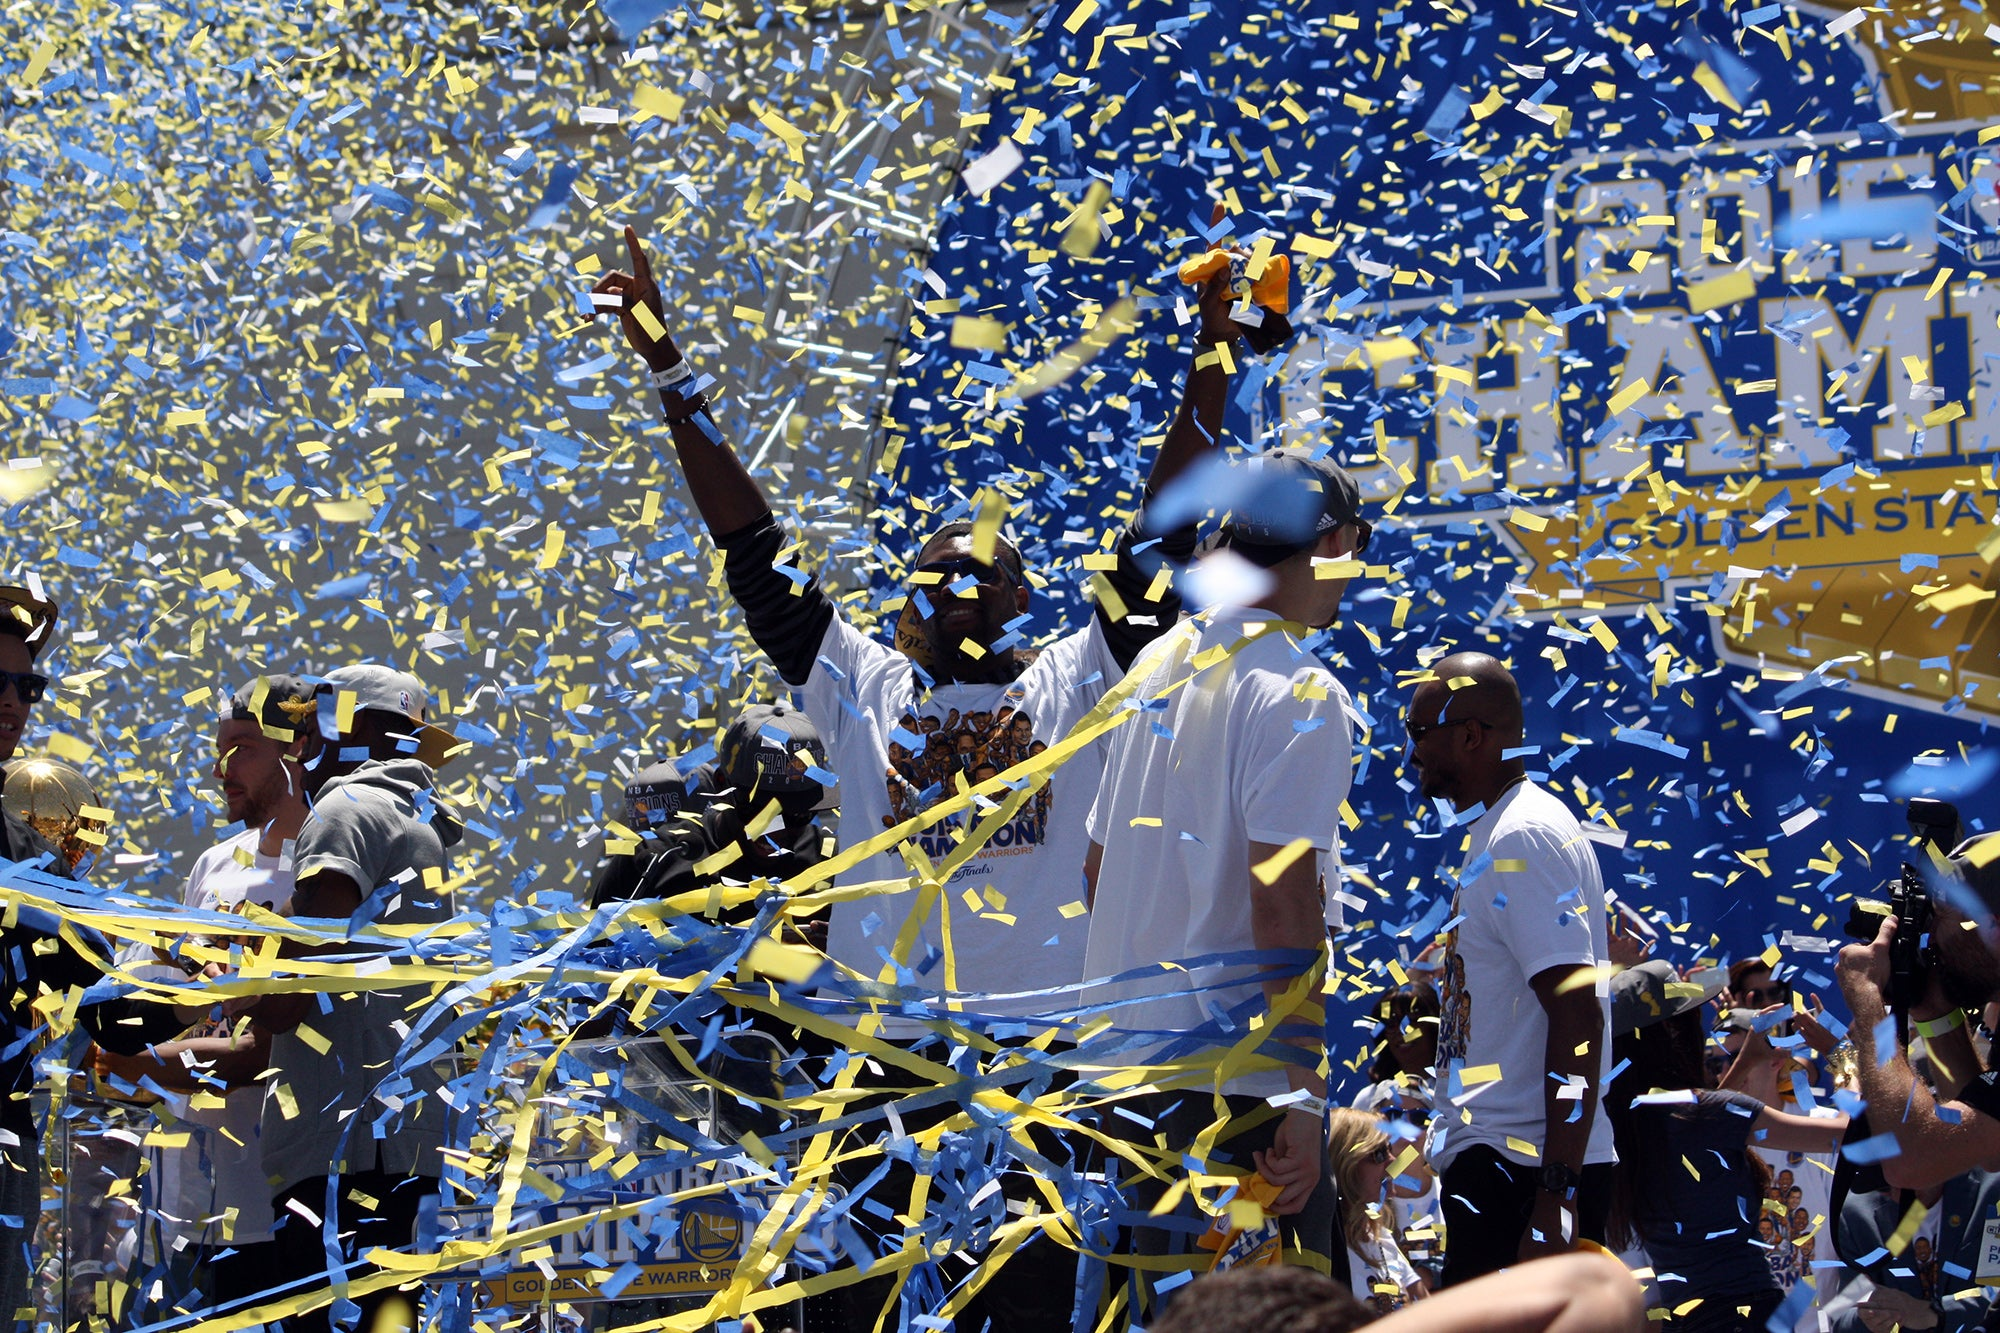 A player emerges from the confetti and streamers, making the V sign with his arms.